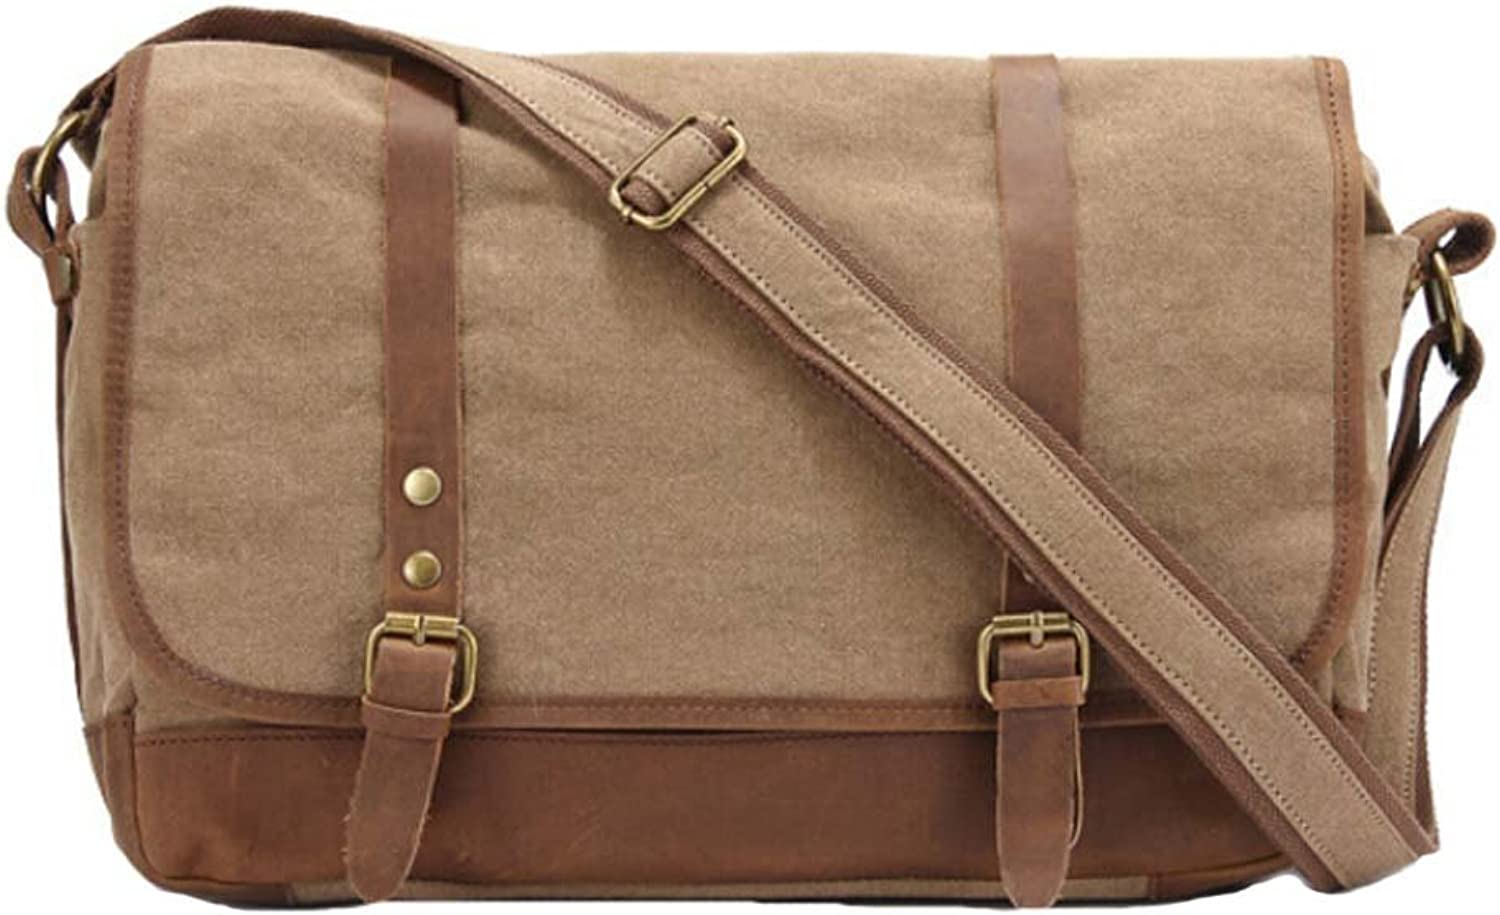 Unisex Vintage Canvas Shoulder Bag Casual School Military Messenger Crossbody Bag (Coffee)